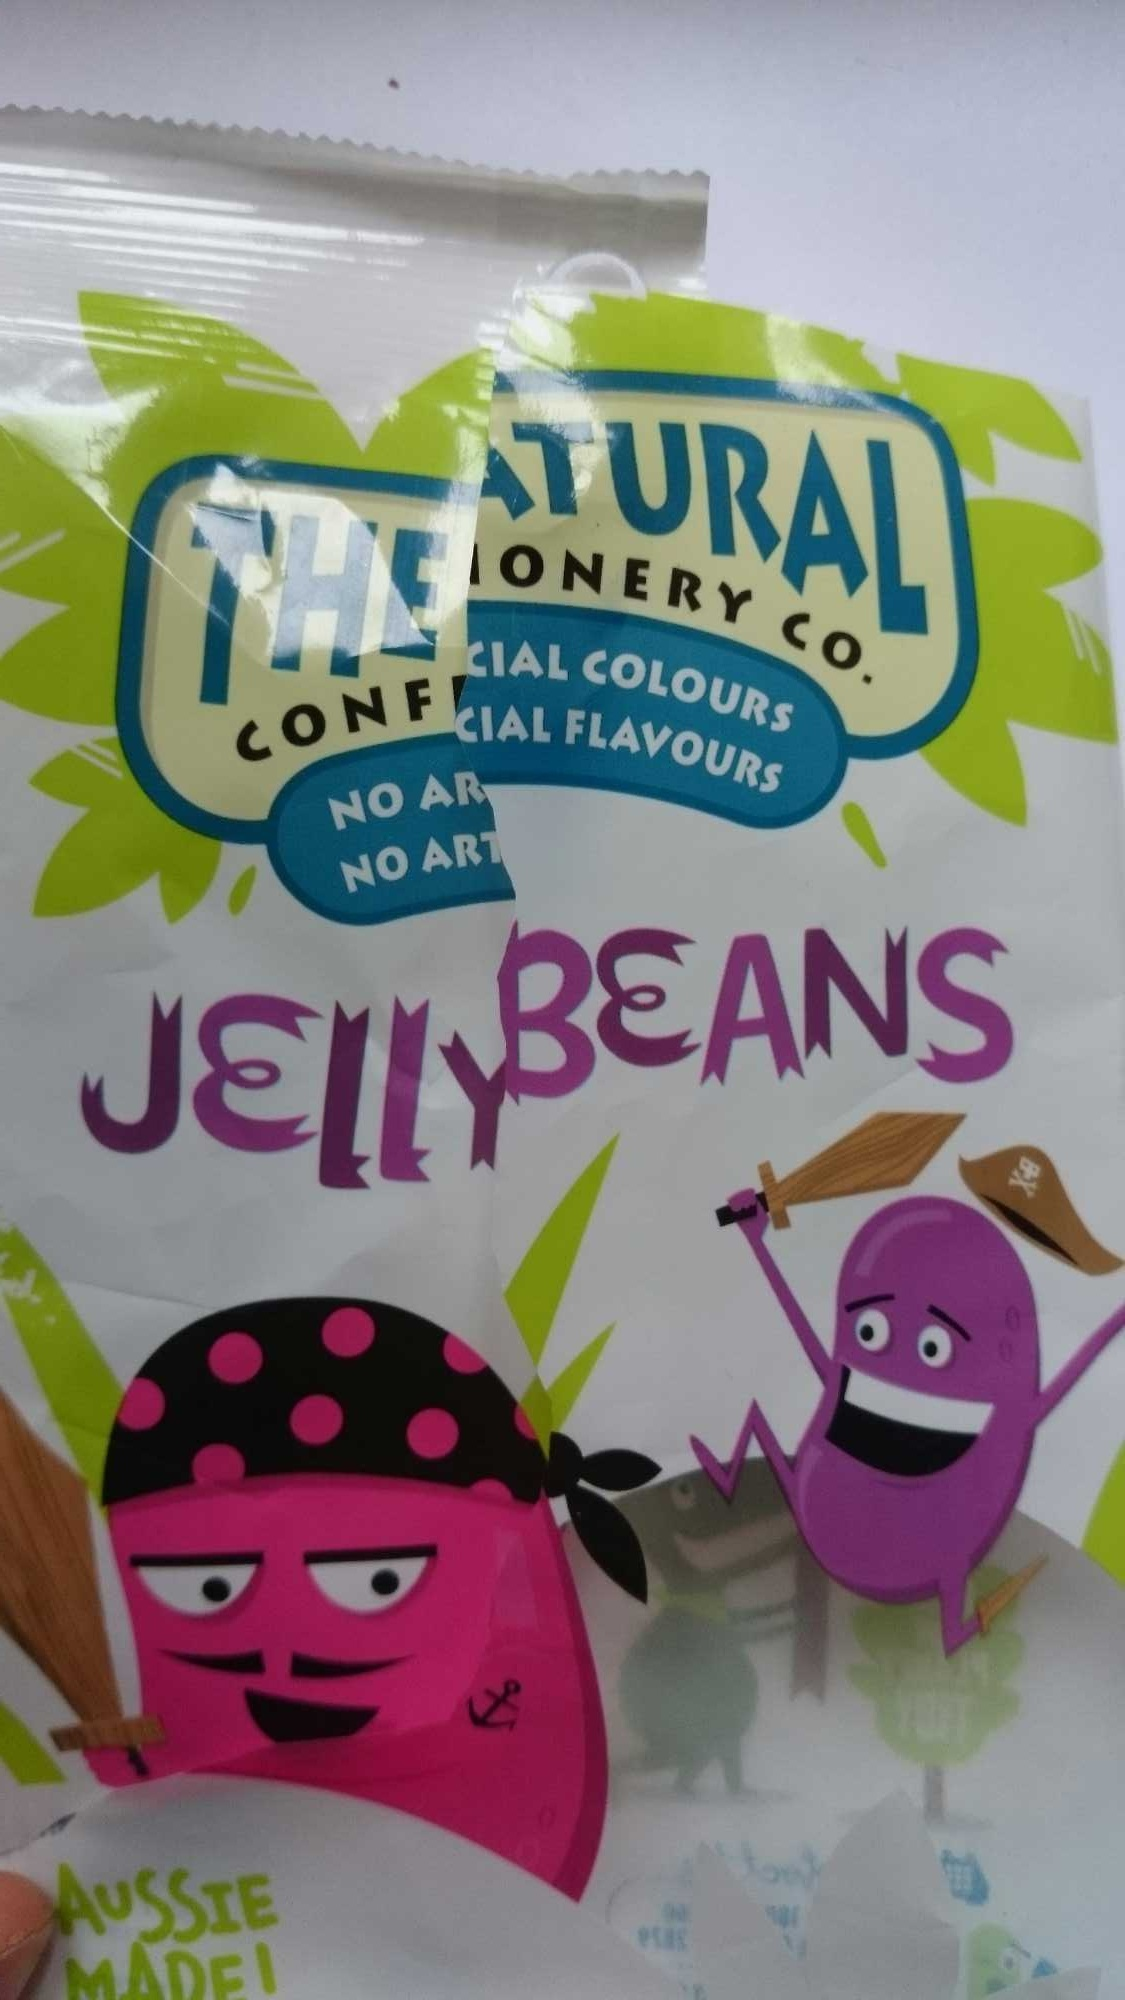 jelly beans - Product - en